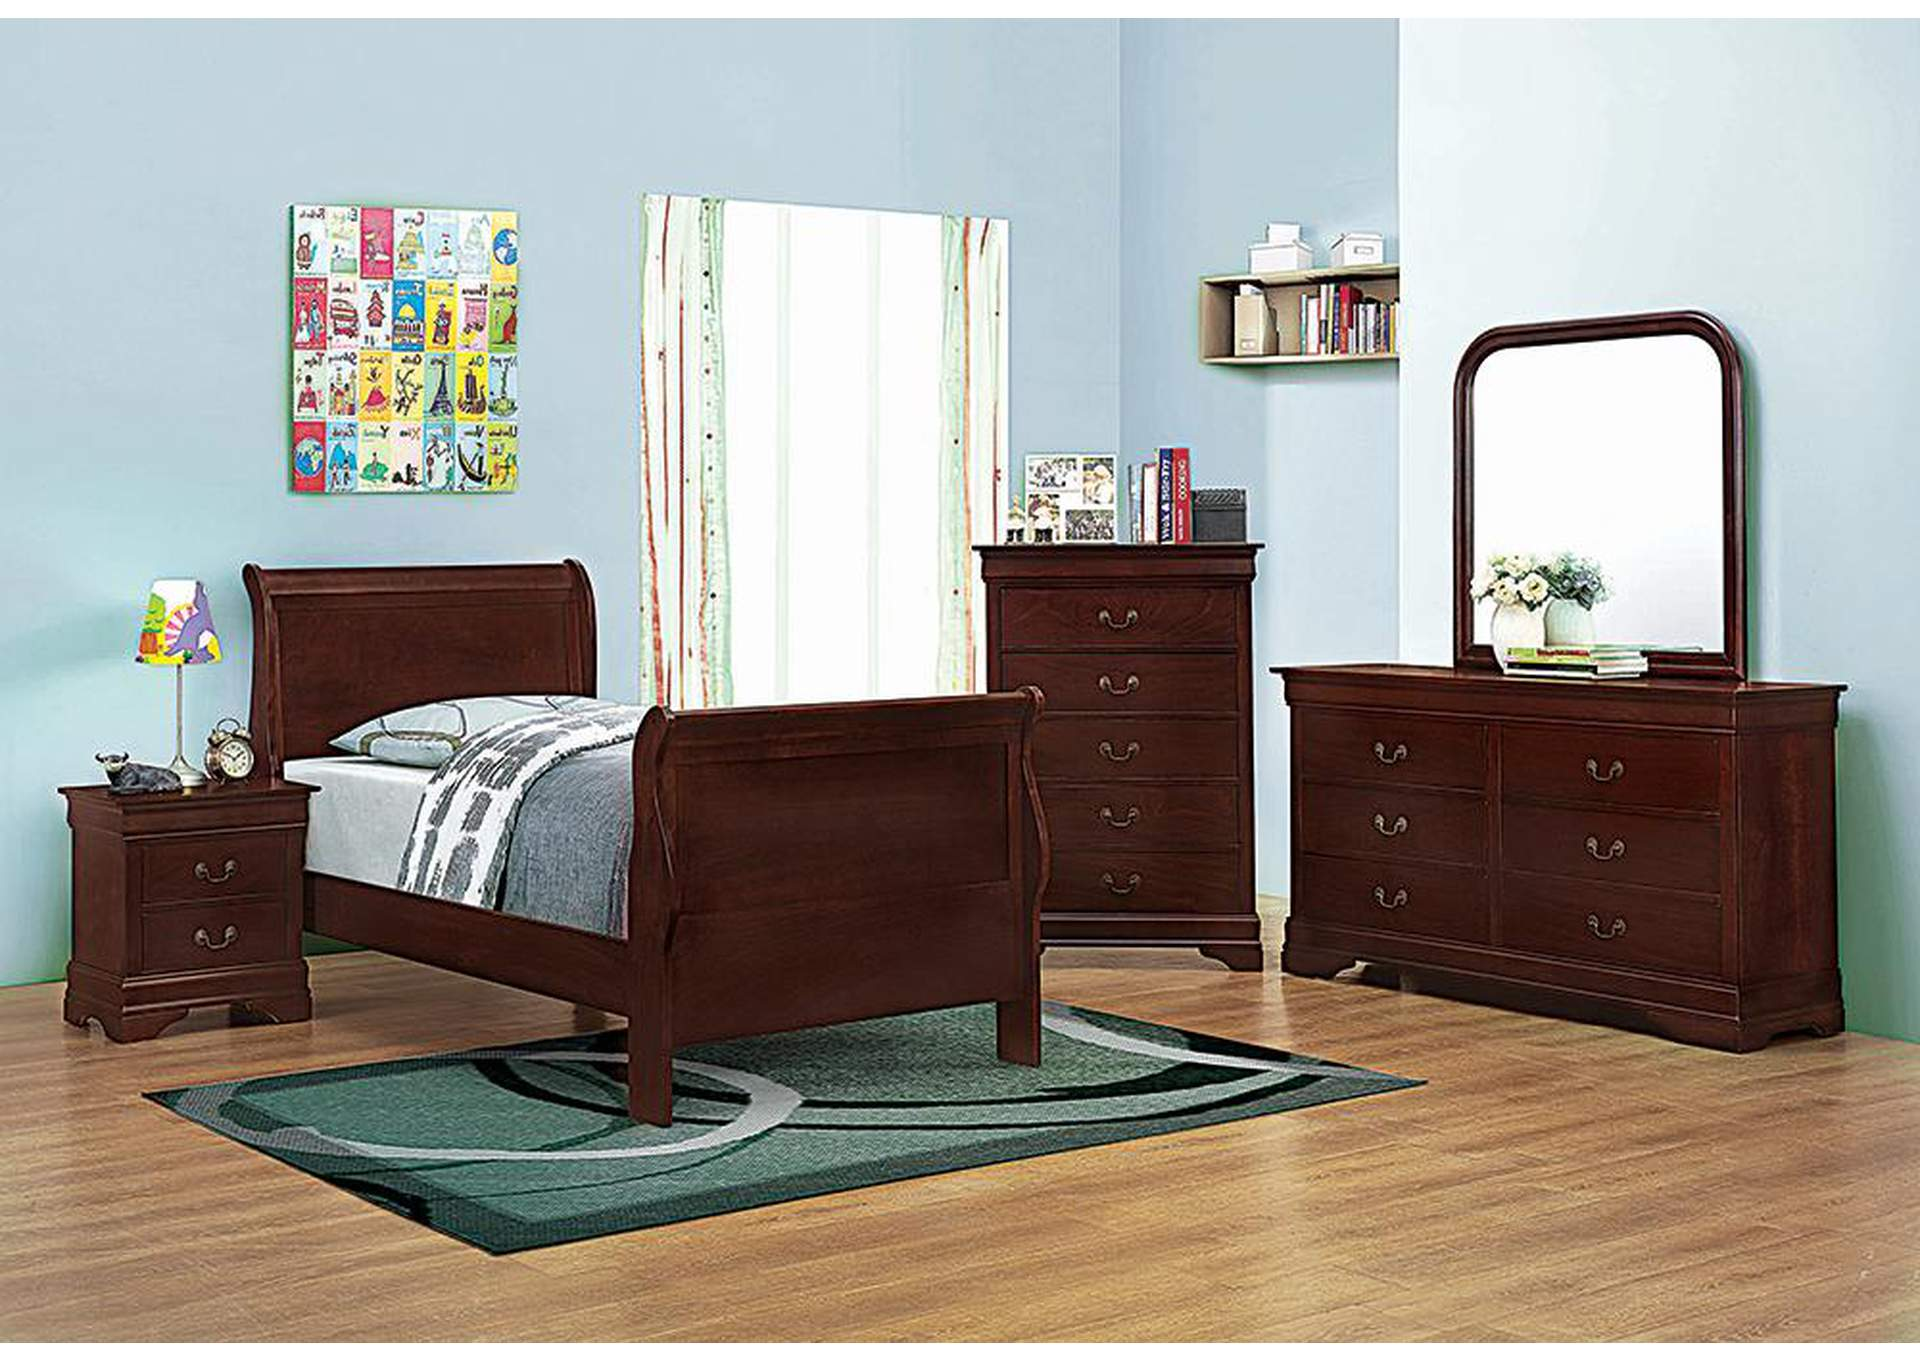 Cherry Full Bed,ABF Coaster Furniture